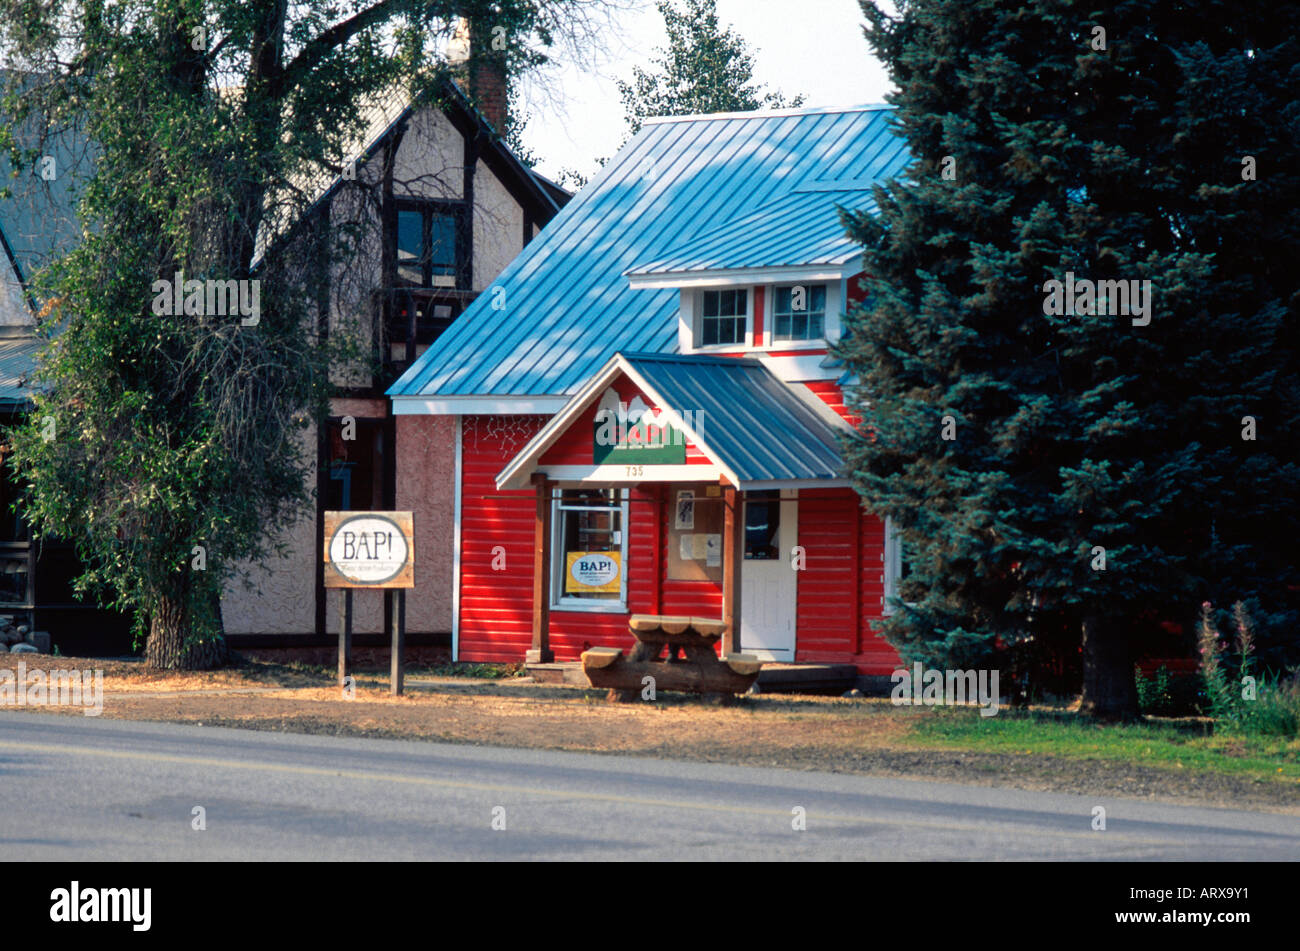 BAP Retail store in converted red single family home Steamboat Springs CO USA Stock Photo